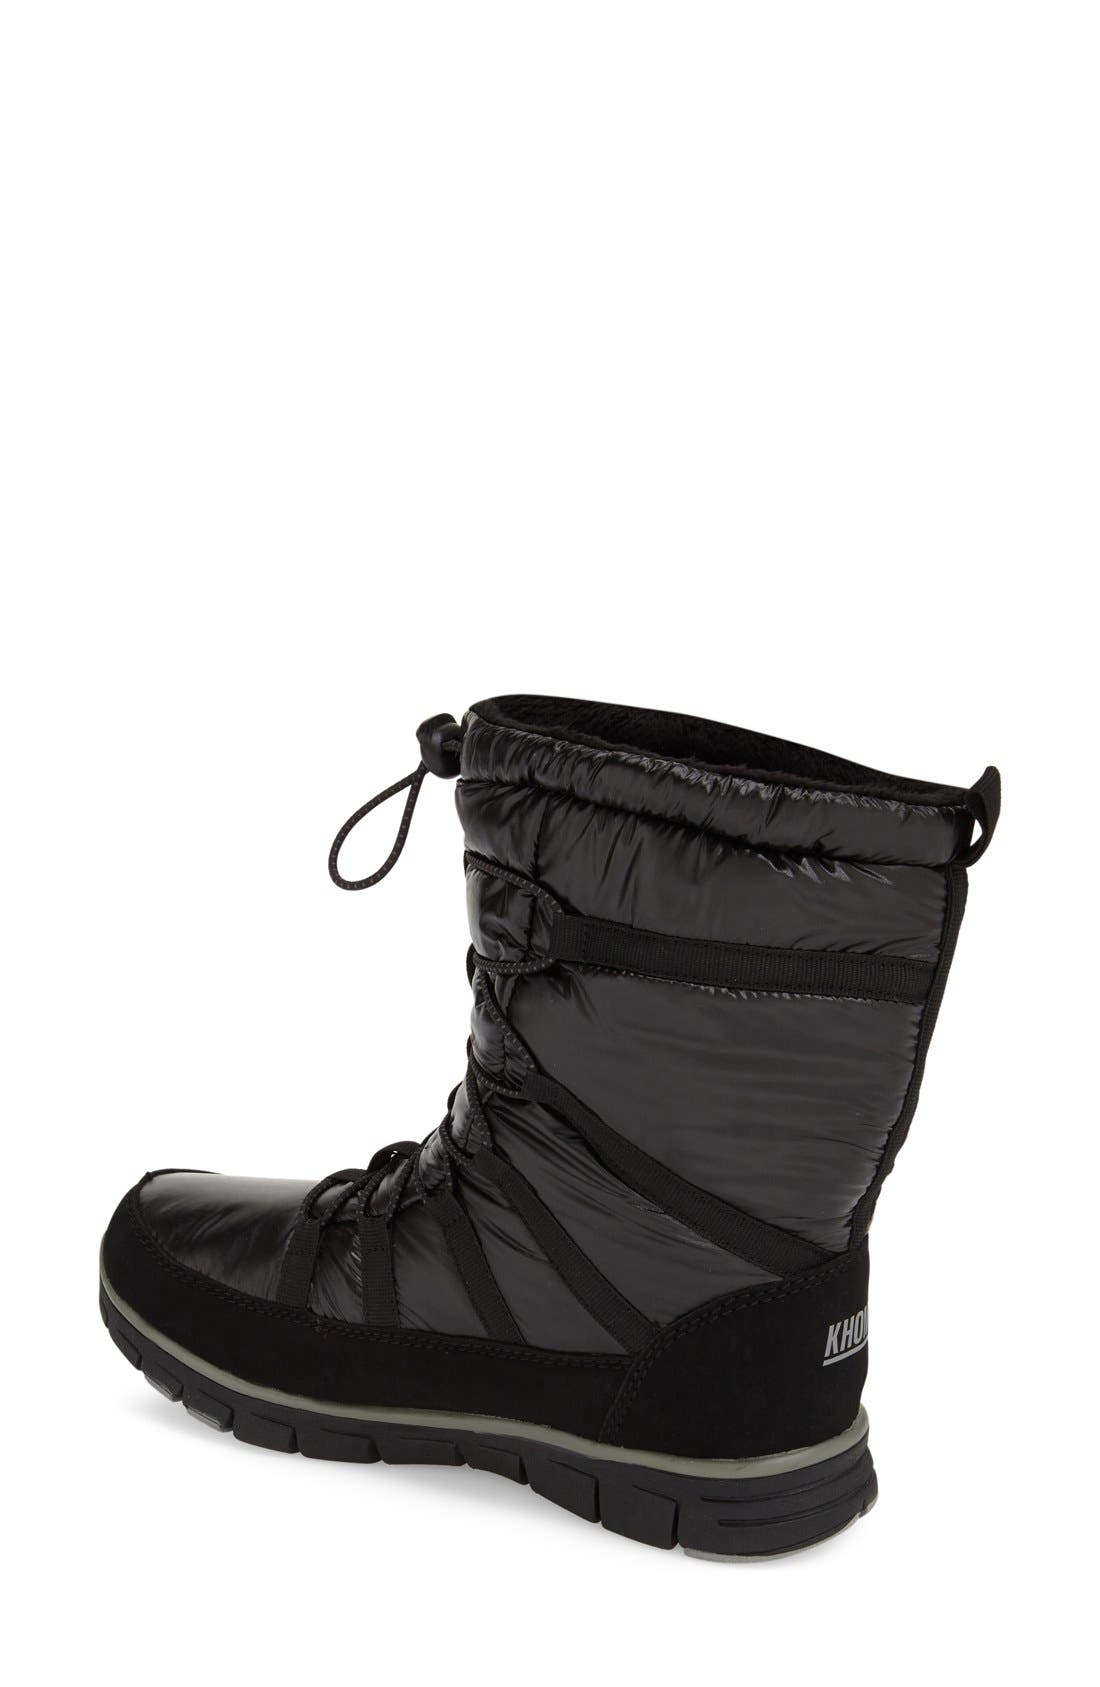 KHOMBU,                             'Diamond' Waterproof Snow Boot,                             Alternate thumbnail 2, color,                             001